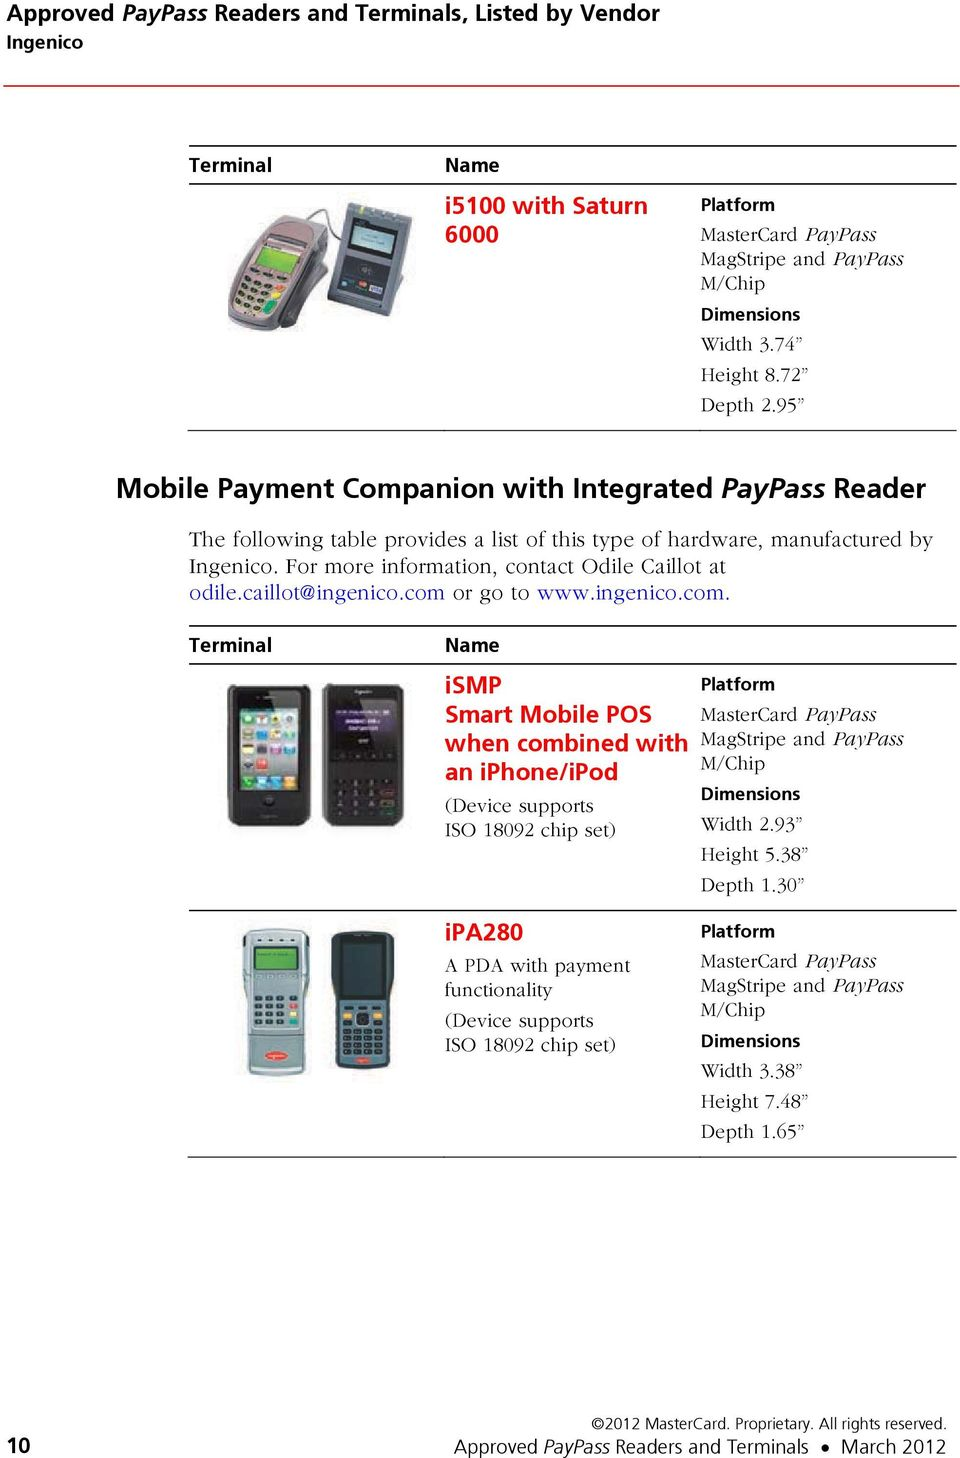 caillot@ingenico.com or go to www.ingenico.com. ismp Smart Mobile POS when combined with an iphone/ipod Width 2.